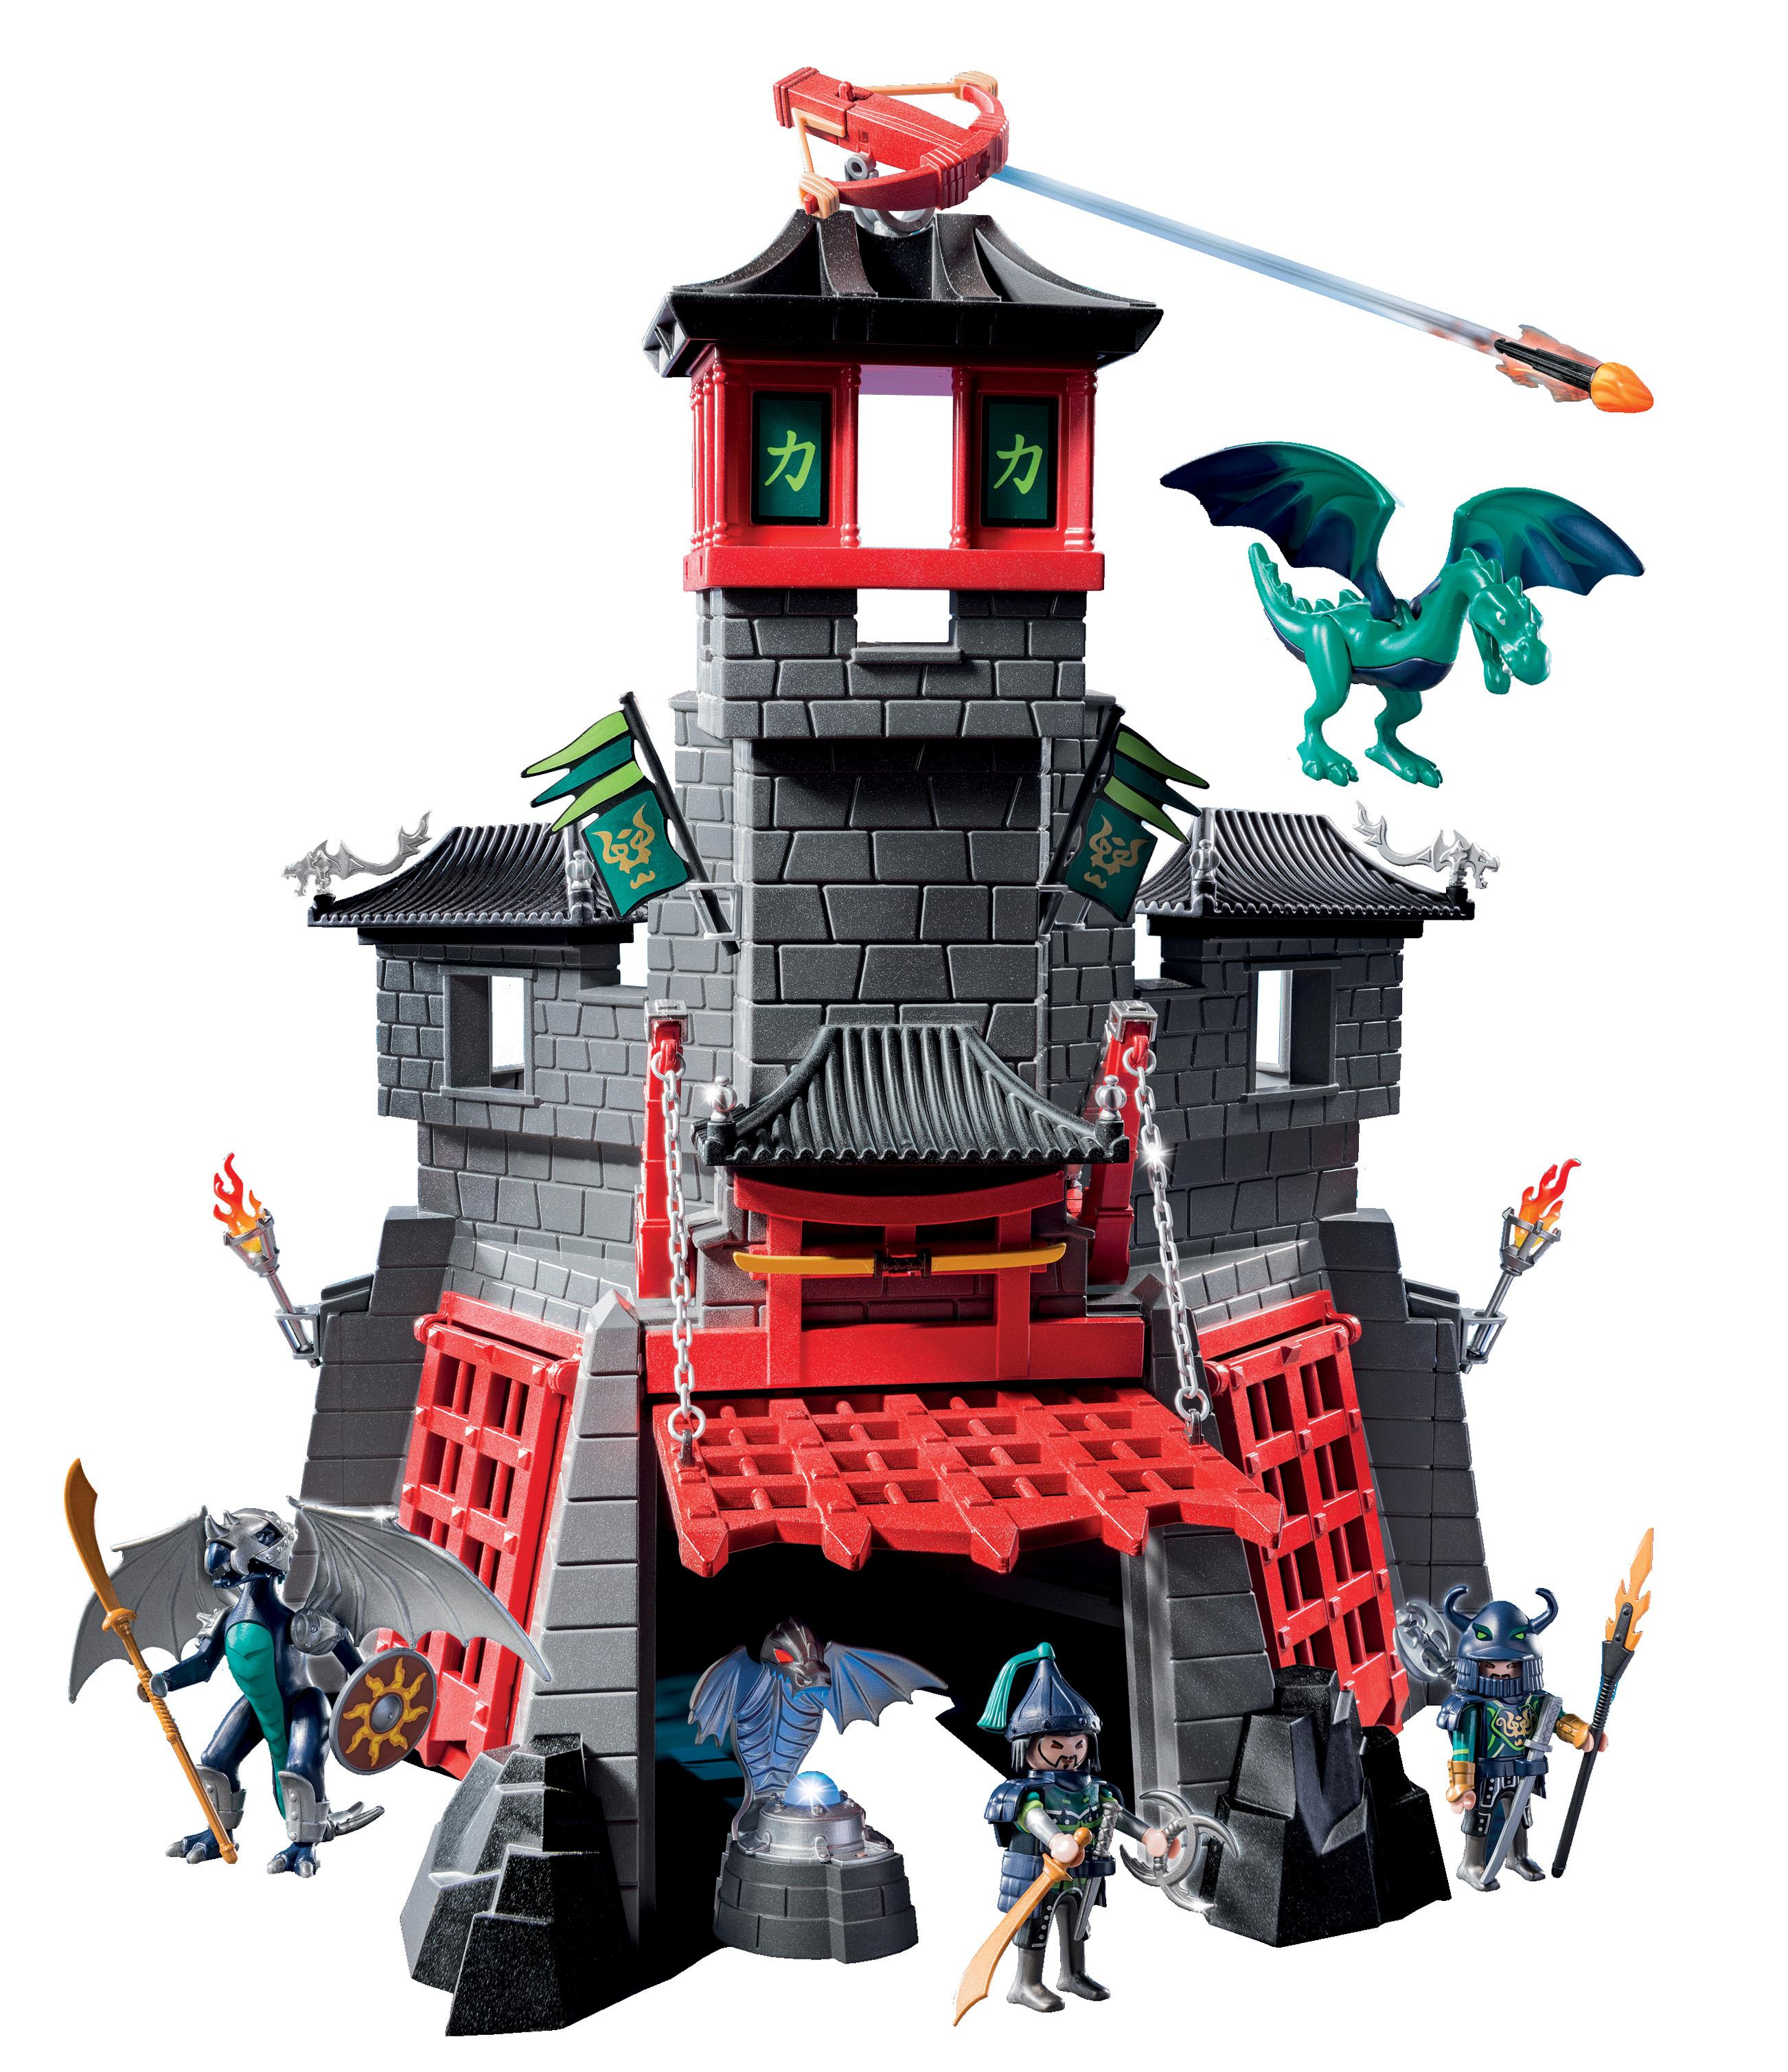 Germany Building Toys For Boys : Playmobil secret dragon fort playset building sets